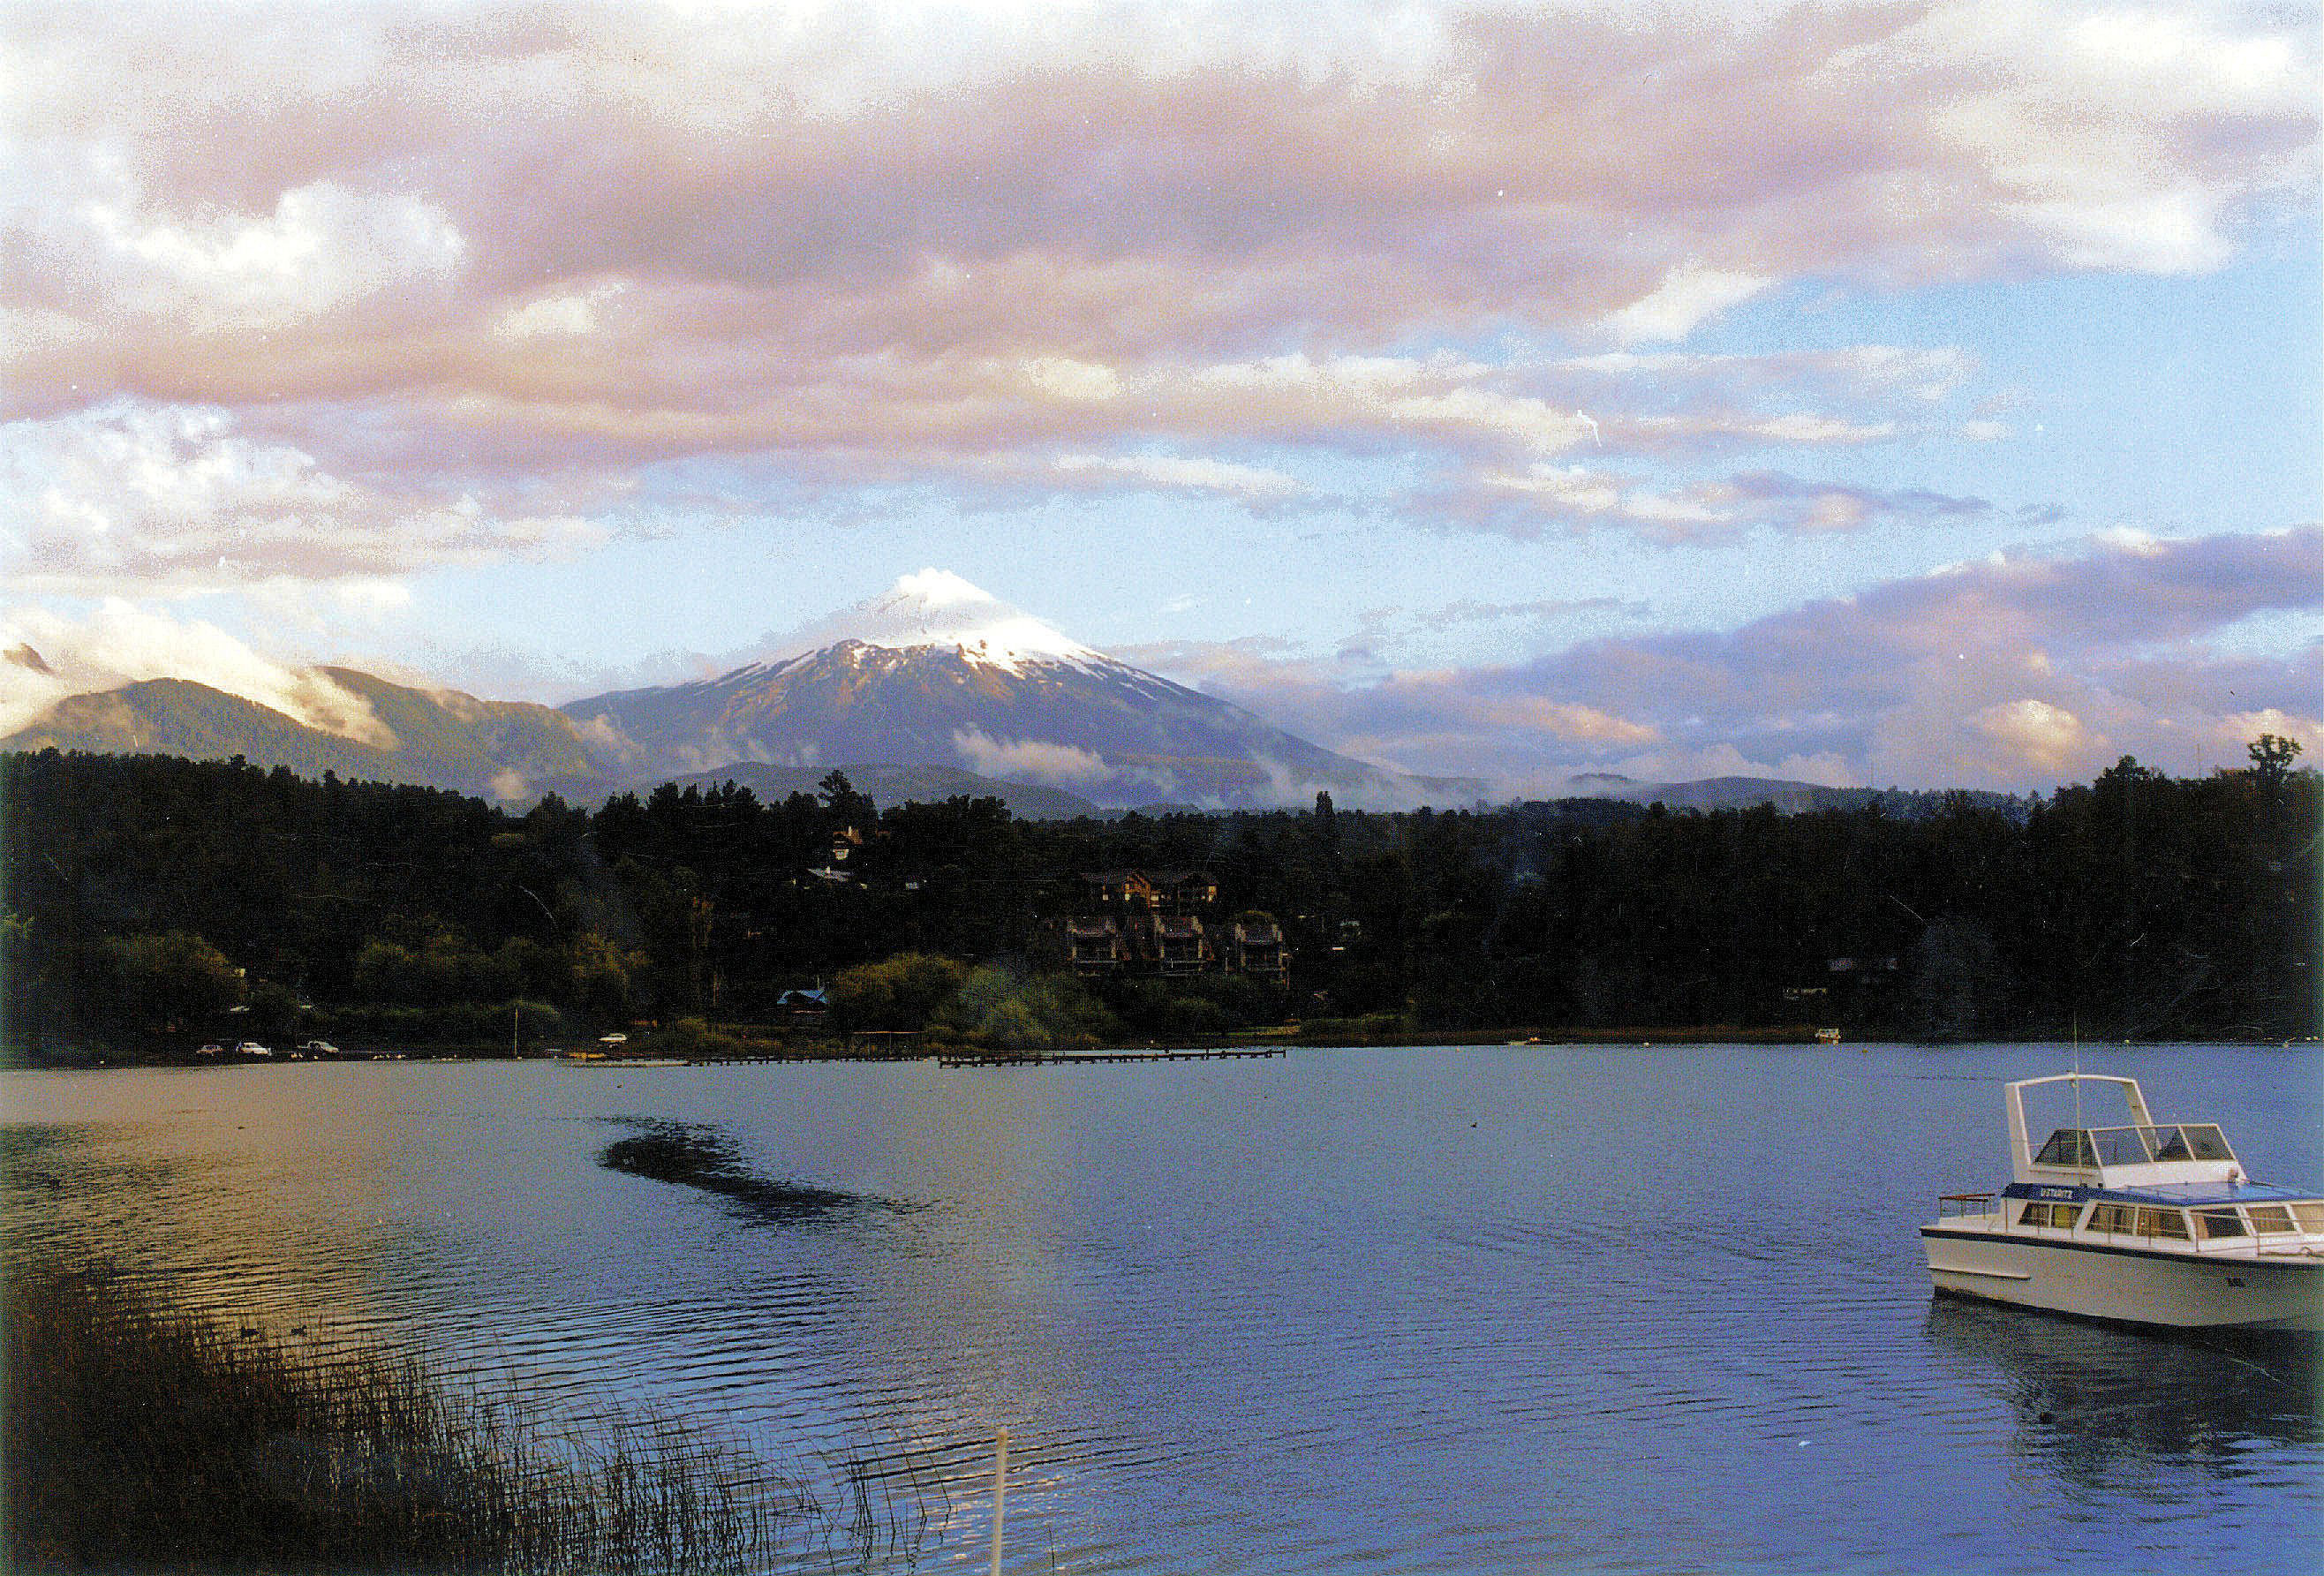 Mount Villarrica's snow-capped peak hints at the ski season to come